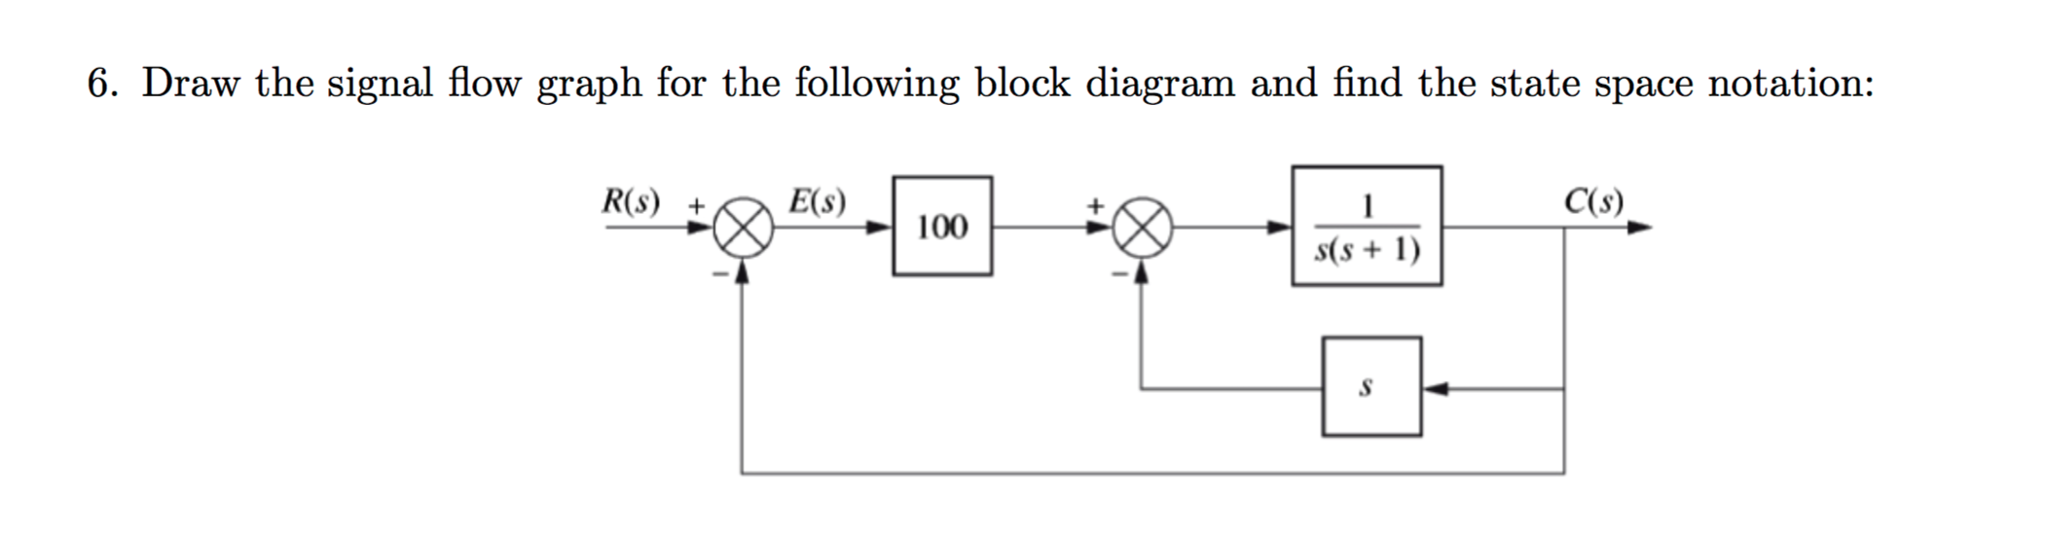 Draw the signal flow graph for the following block